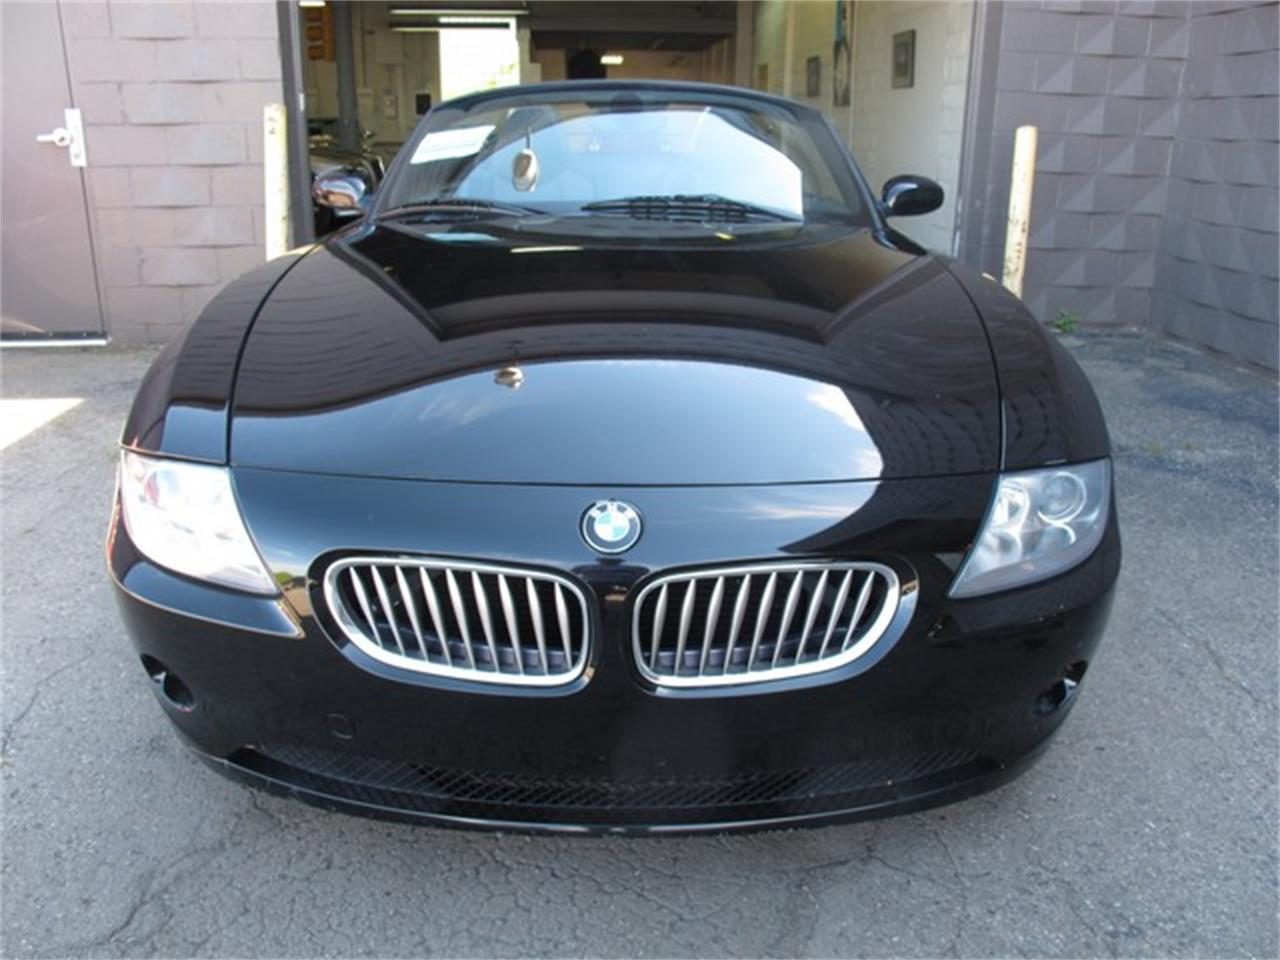 Large Picture of 2005 BMW Z4 located in Michigan - $9,950.00 - NUY8